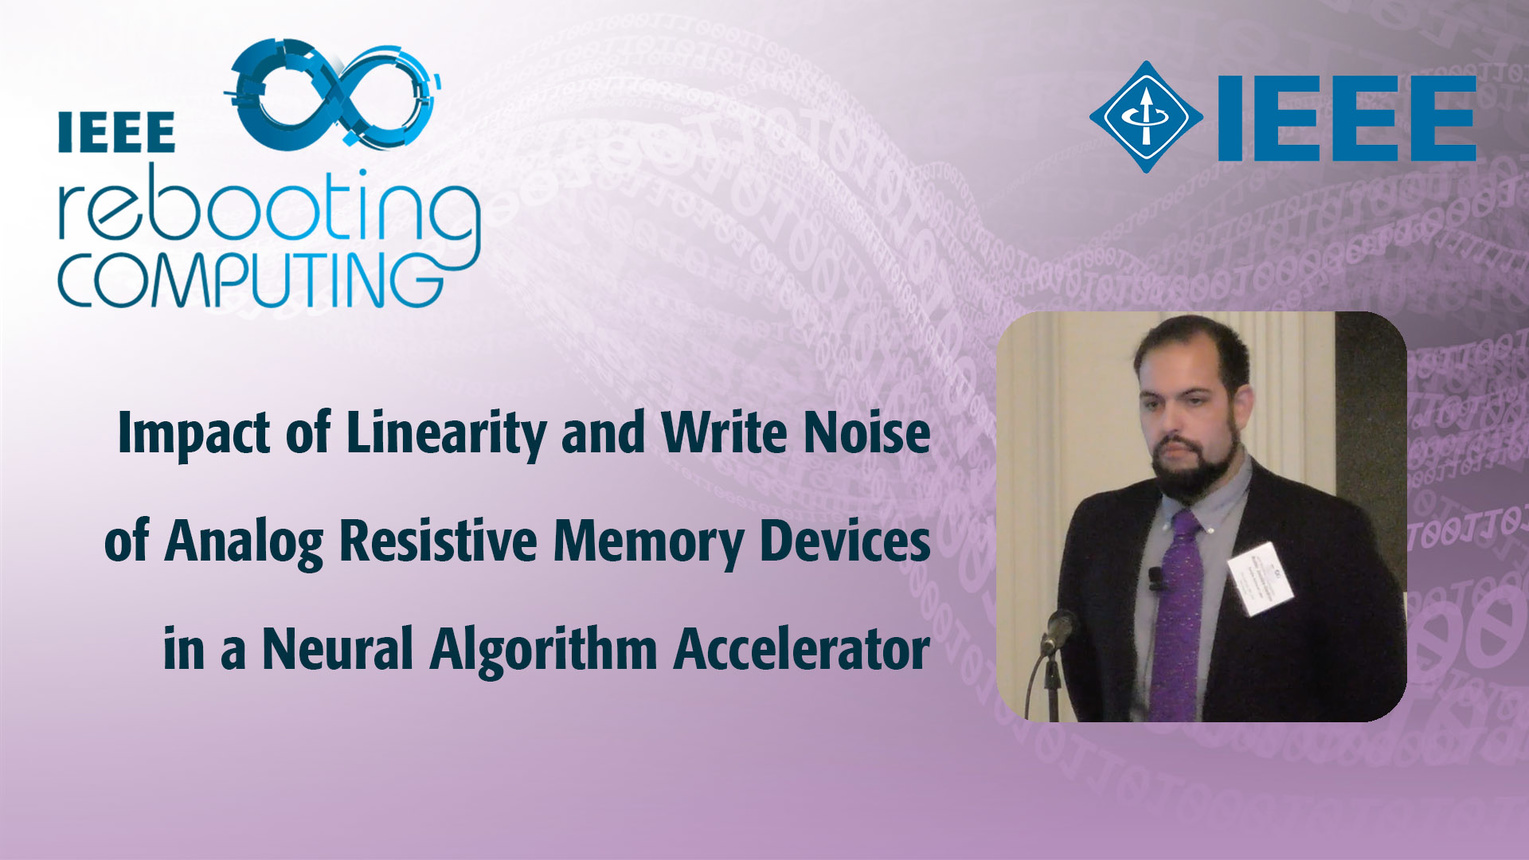 Impact of Linearity and Write Noise of Analog Resistive Memory: IEEE Rebooting Computing 2017